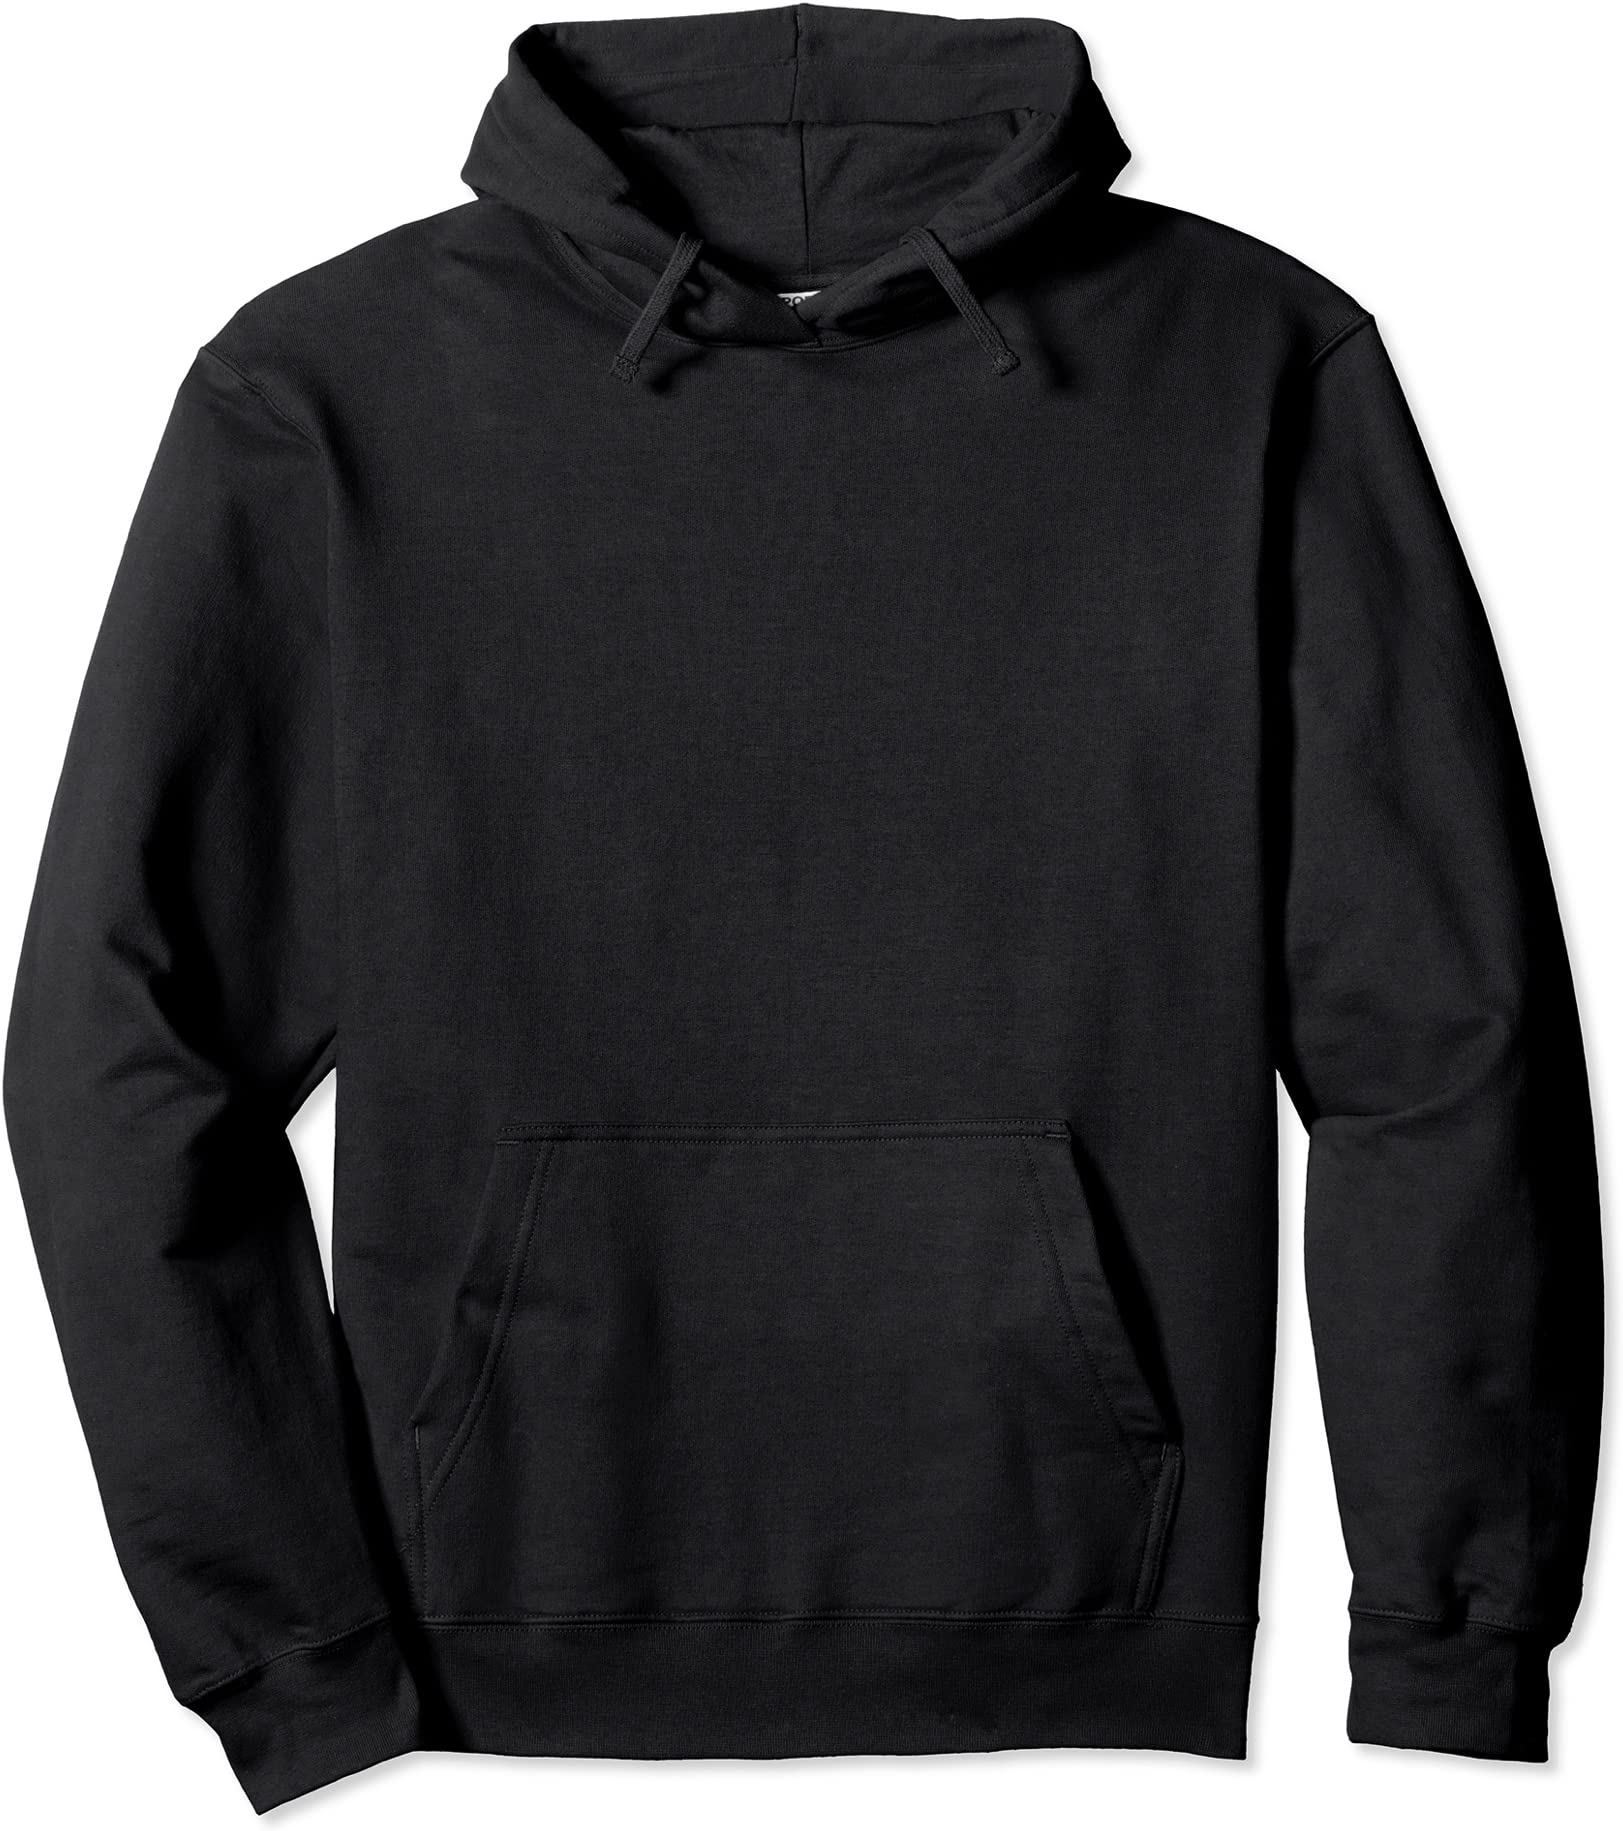 Men/'s Rainbow LGBT Lives Matter Black Hoodie Gay Lesbian Pride Equality Rights